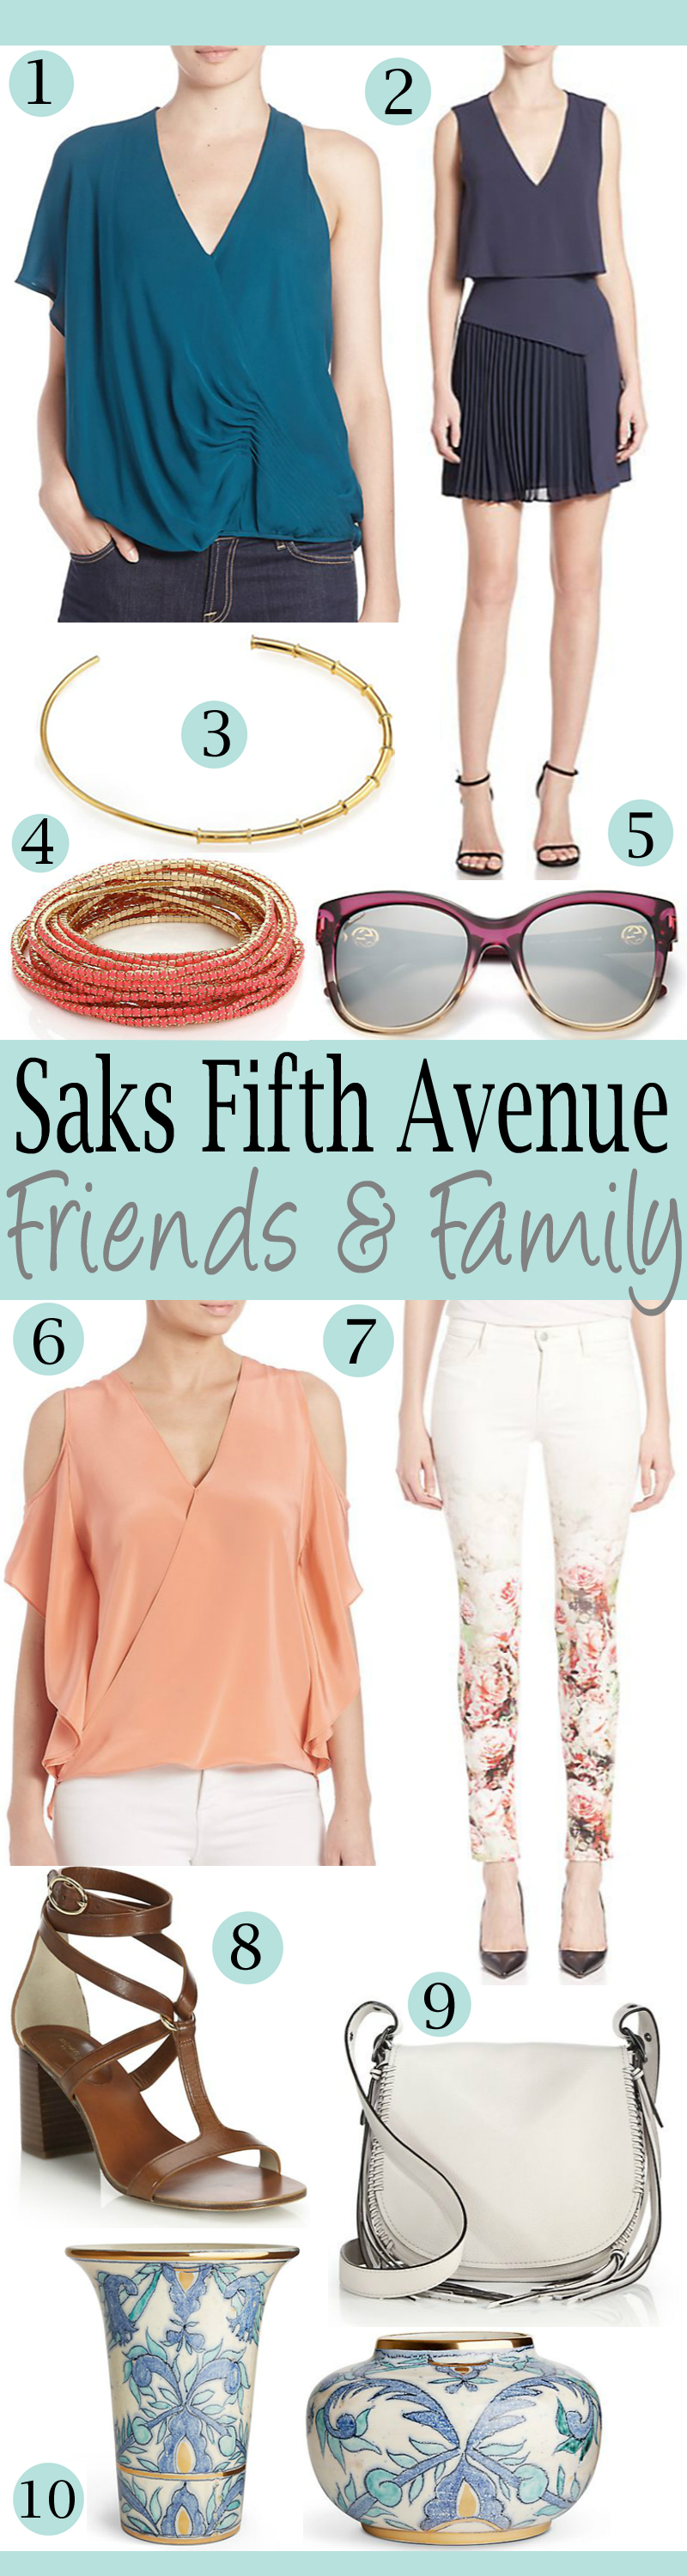 """What To Buy In The Saks Friends & Family """"Thank You"""" Sale!"""